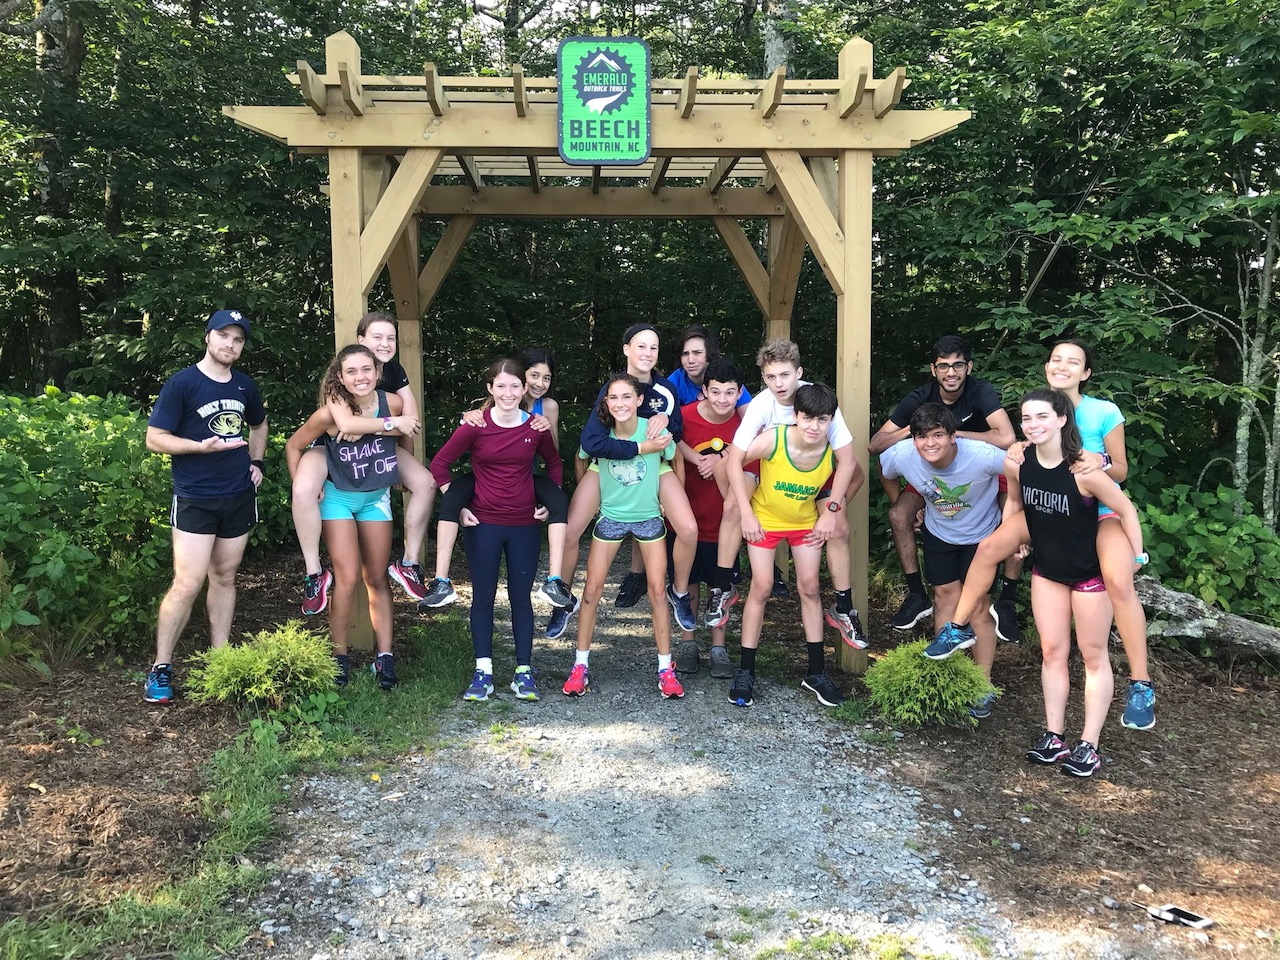 Members of the cross country team spent a week running the hills in North Carolina.